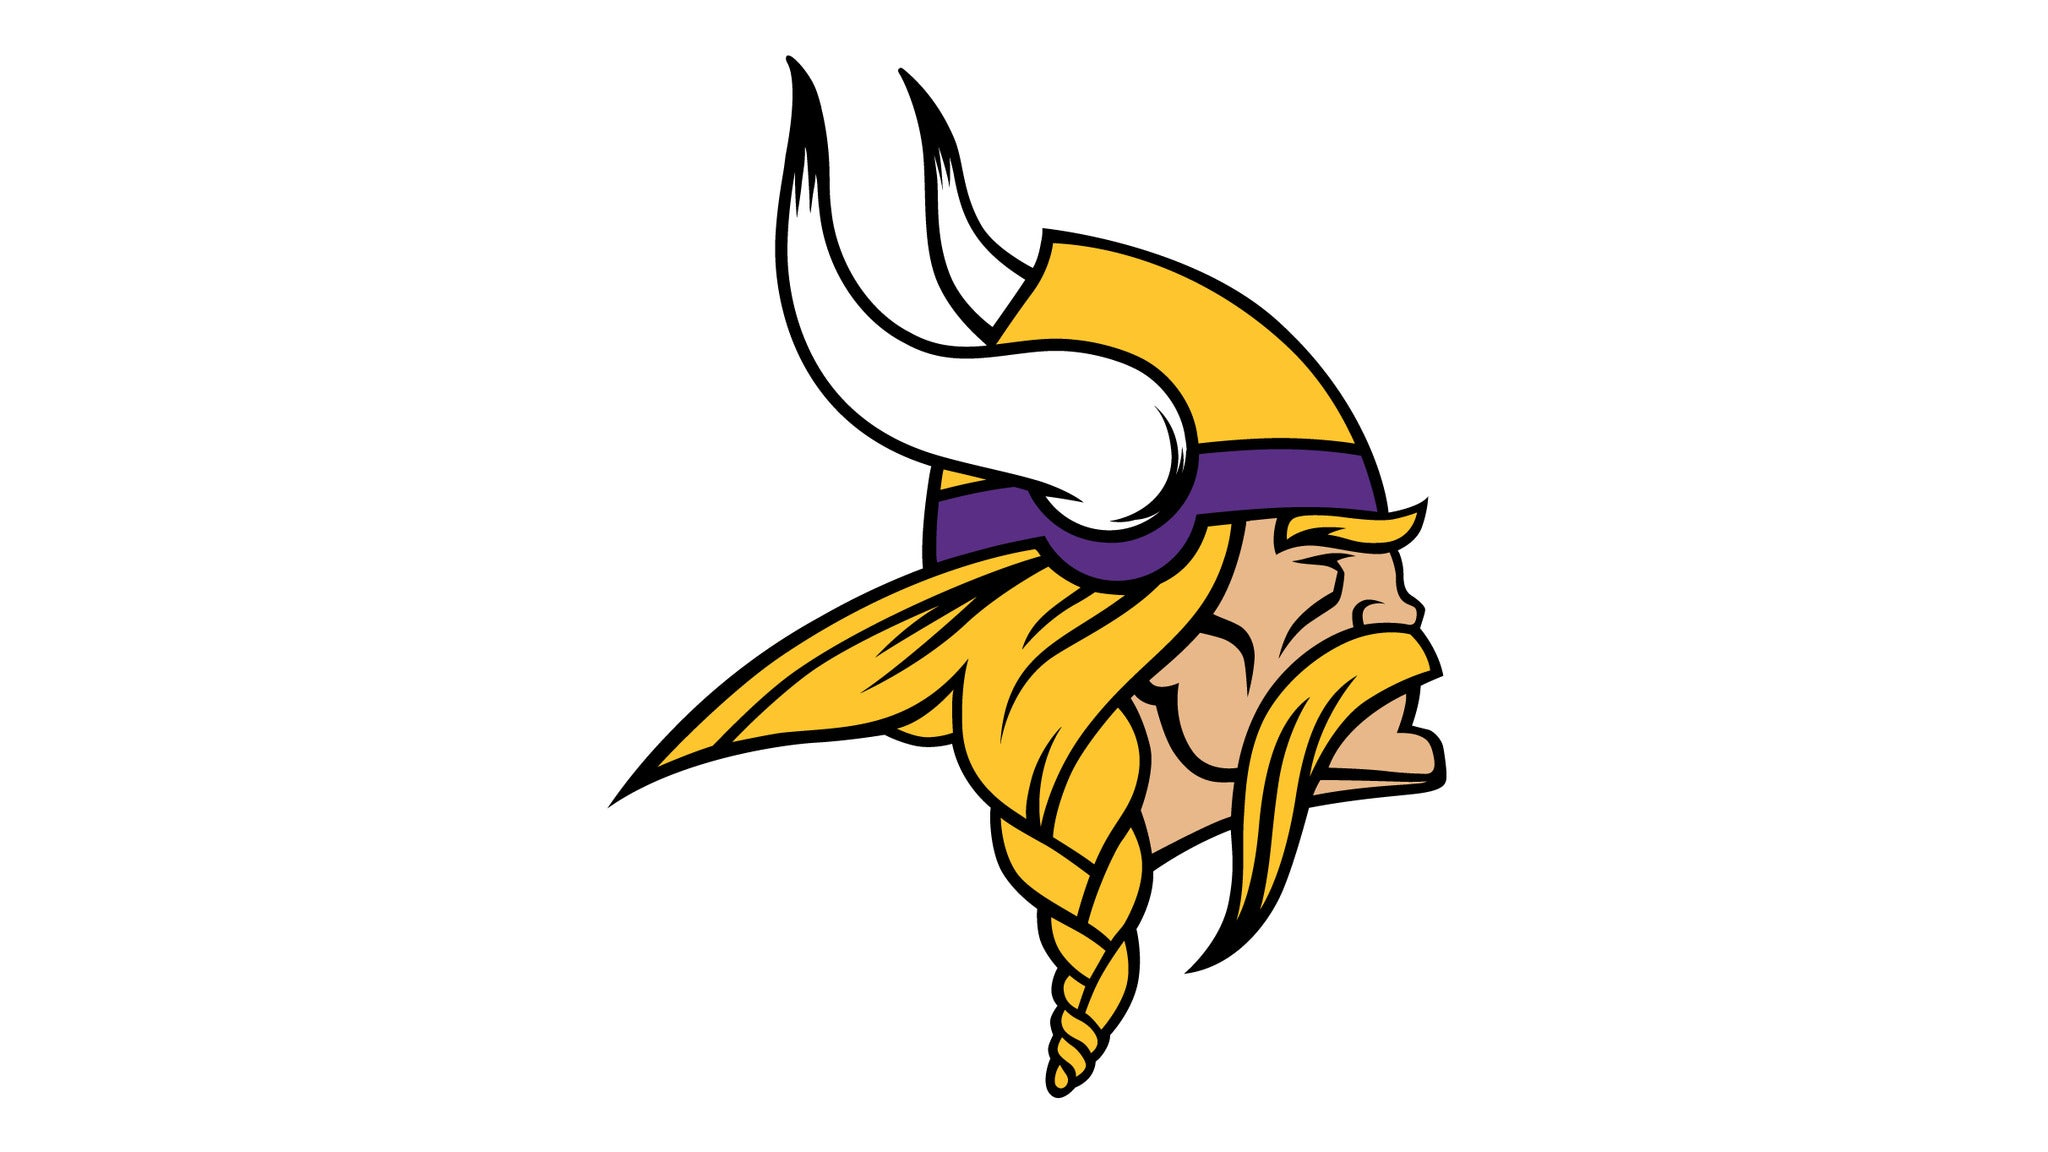 Minnesota Vikings vs. Green Bay Packers at U.S. Bank Stadium